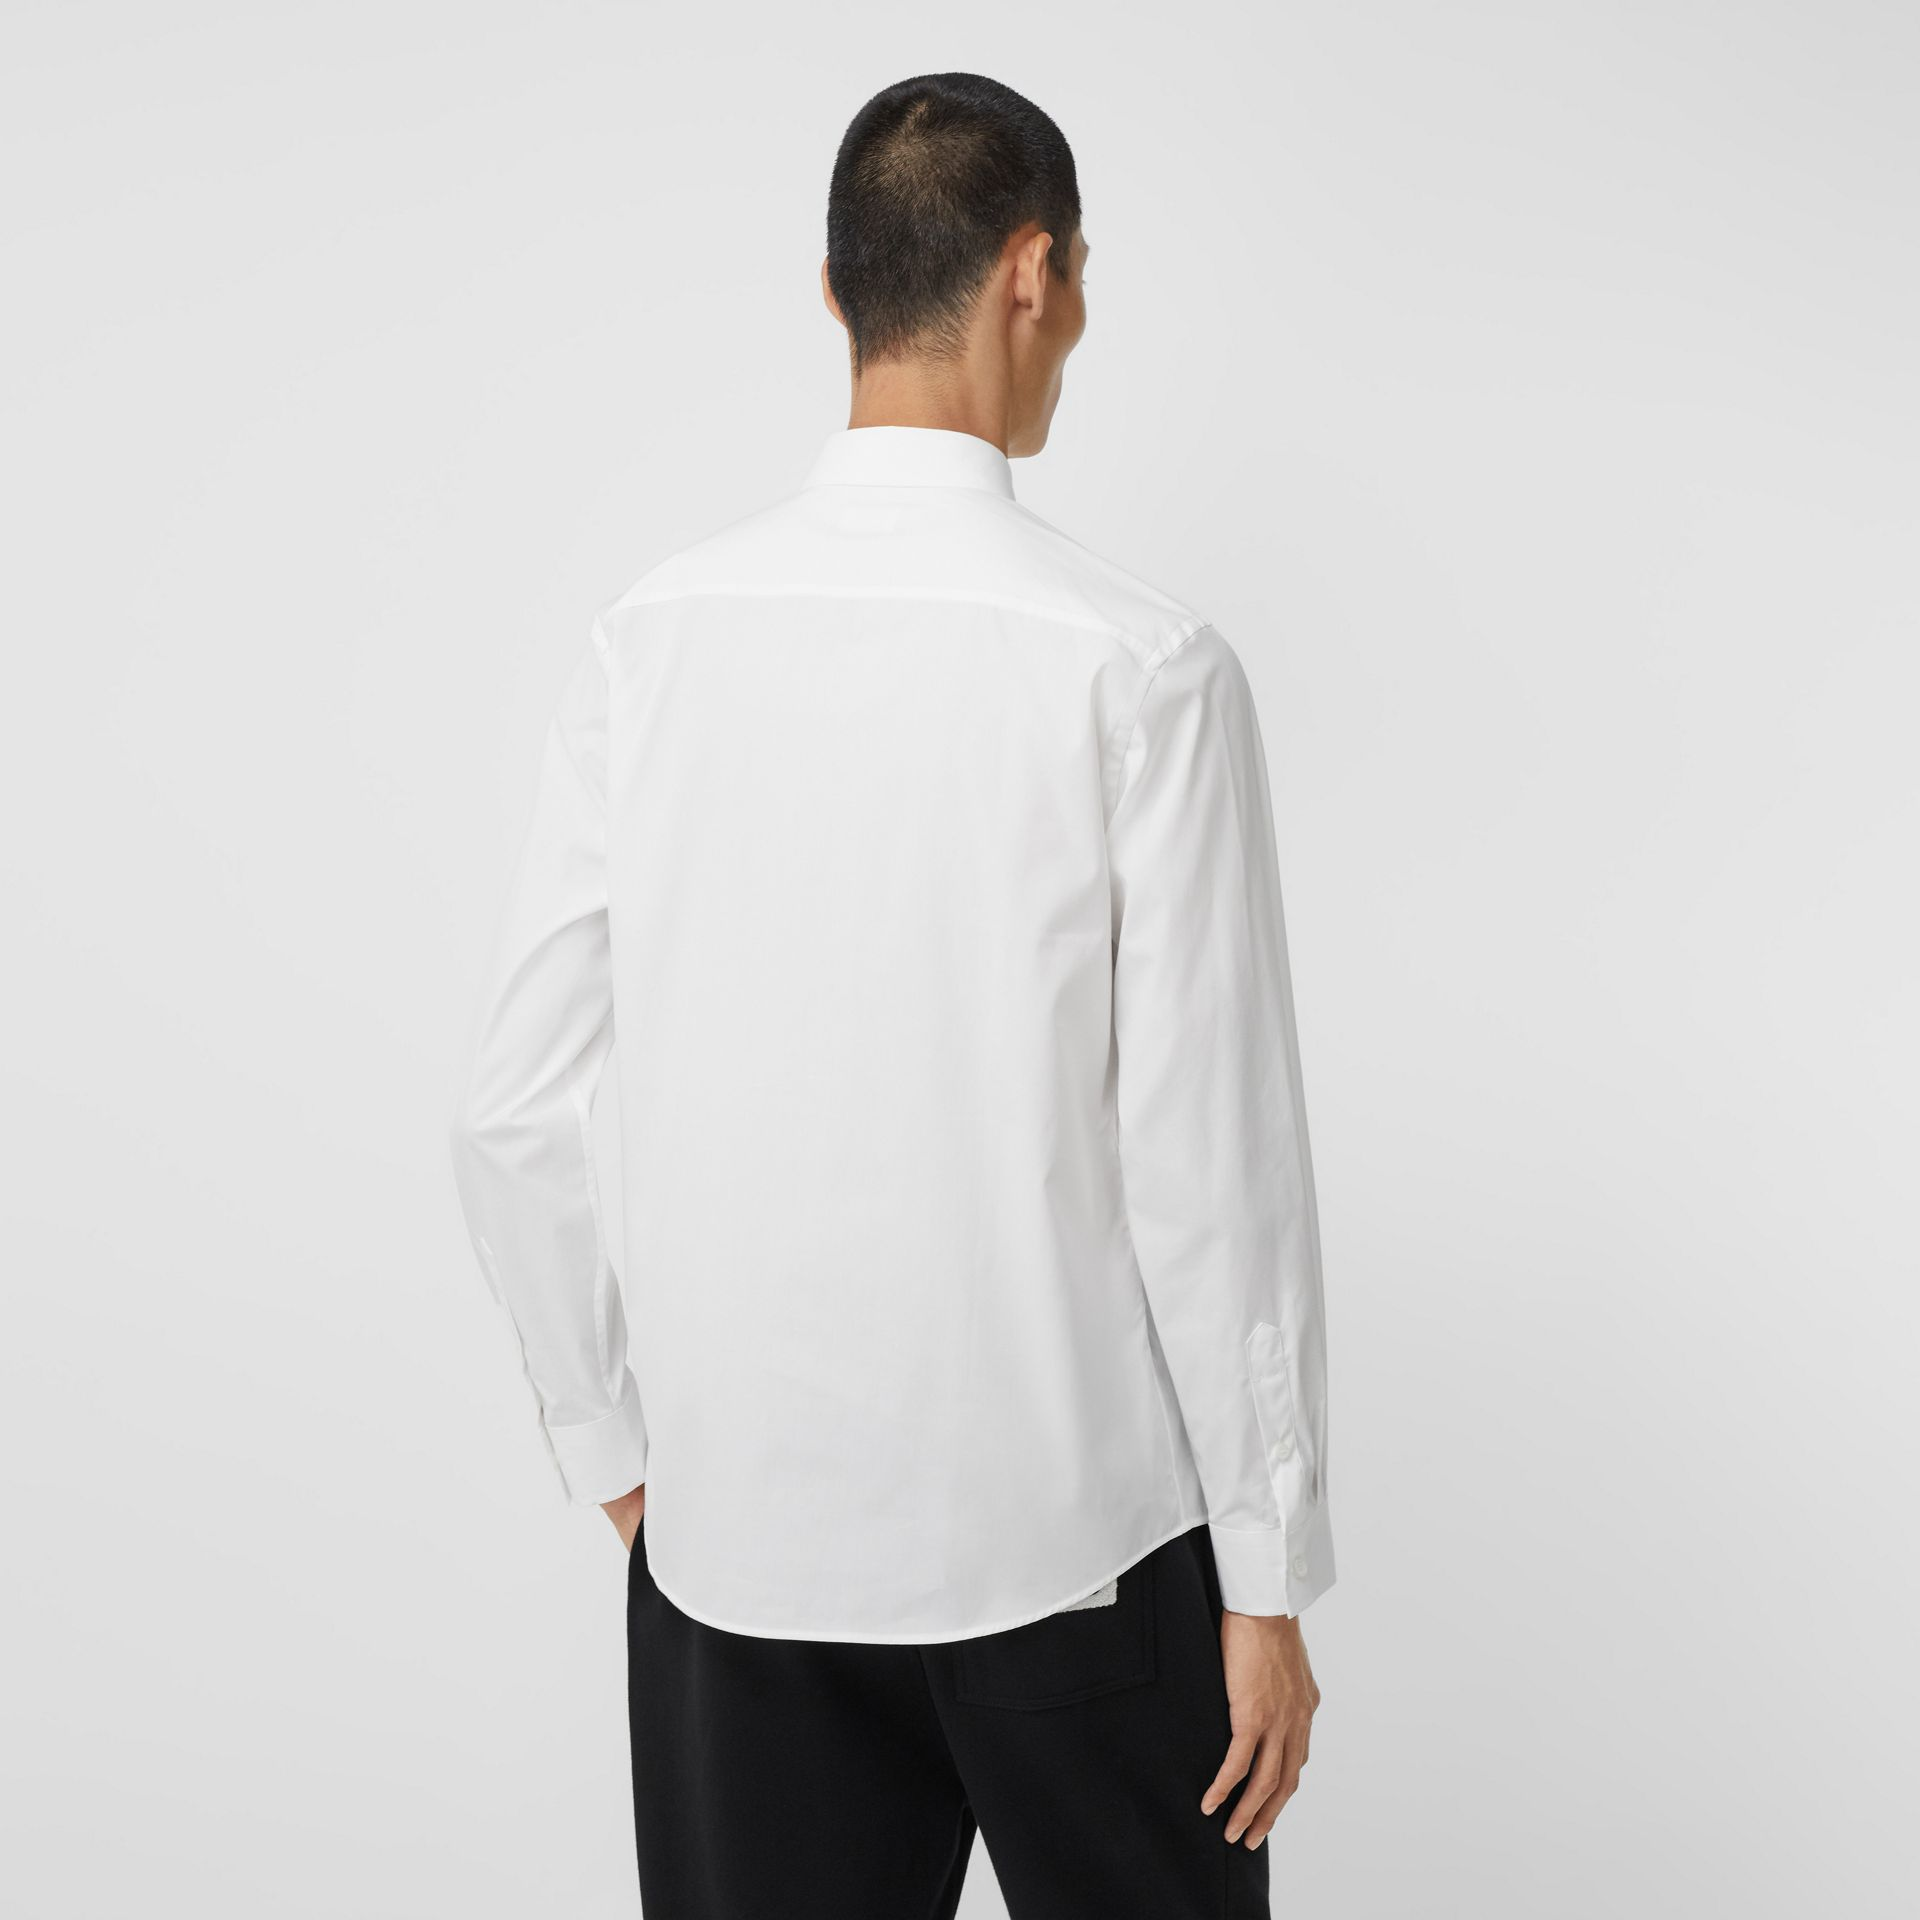 Logo Detail Stretch Cotton Poplin Shirt in White - Men | Burberry Hong Kong S.A.R - gallery image 2